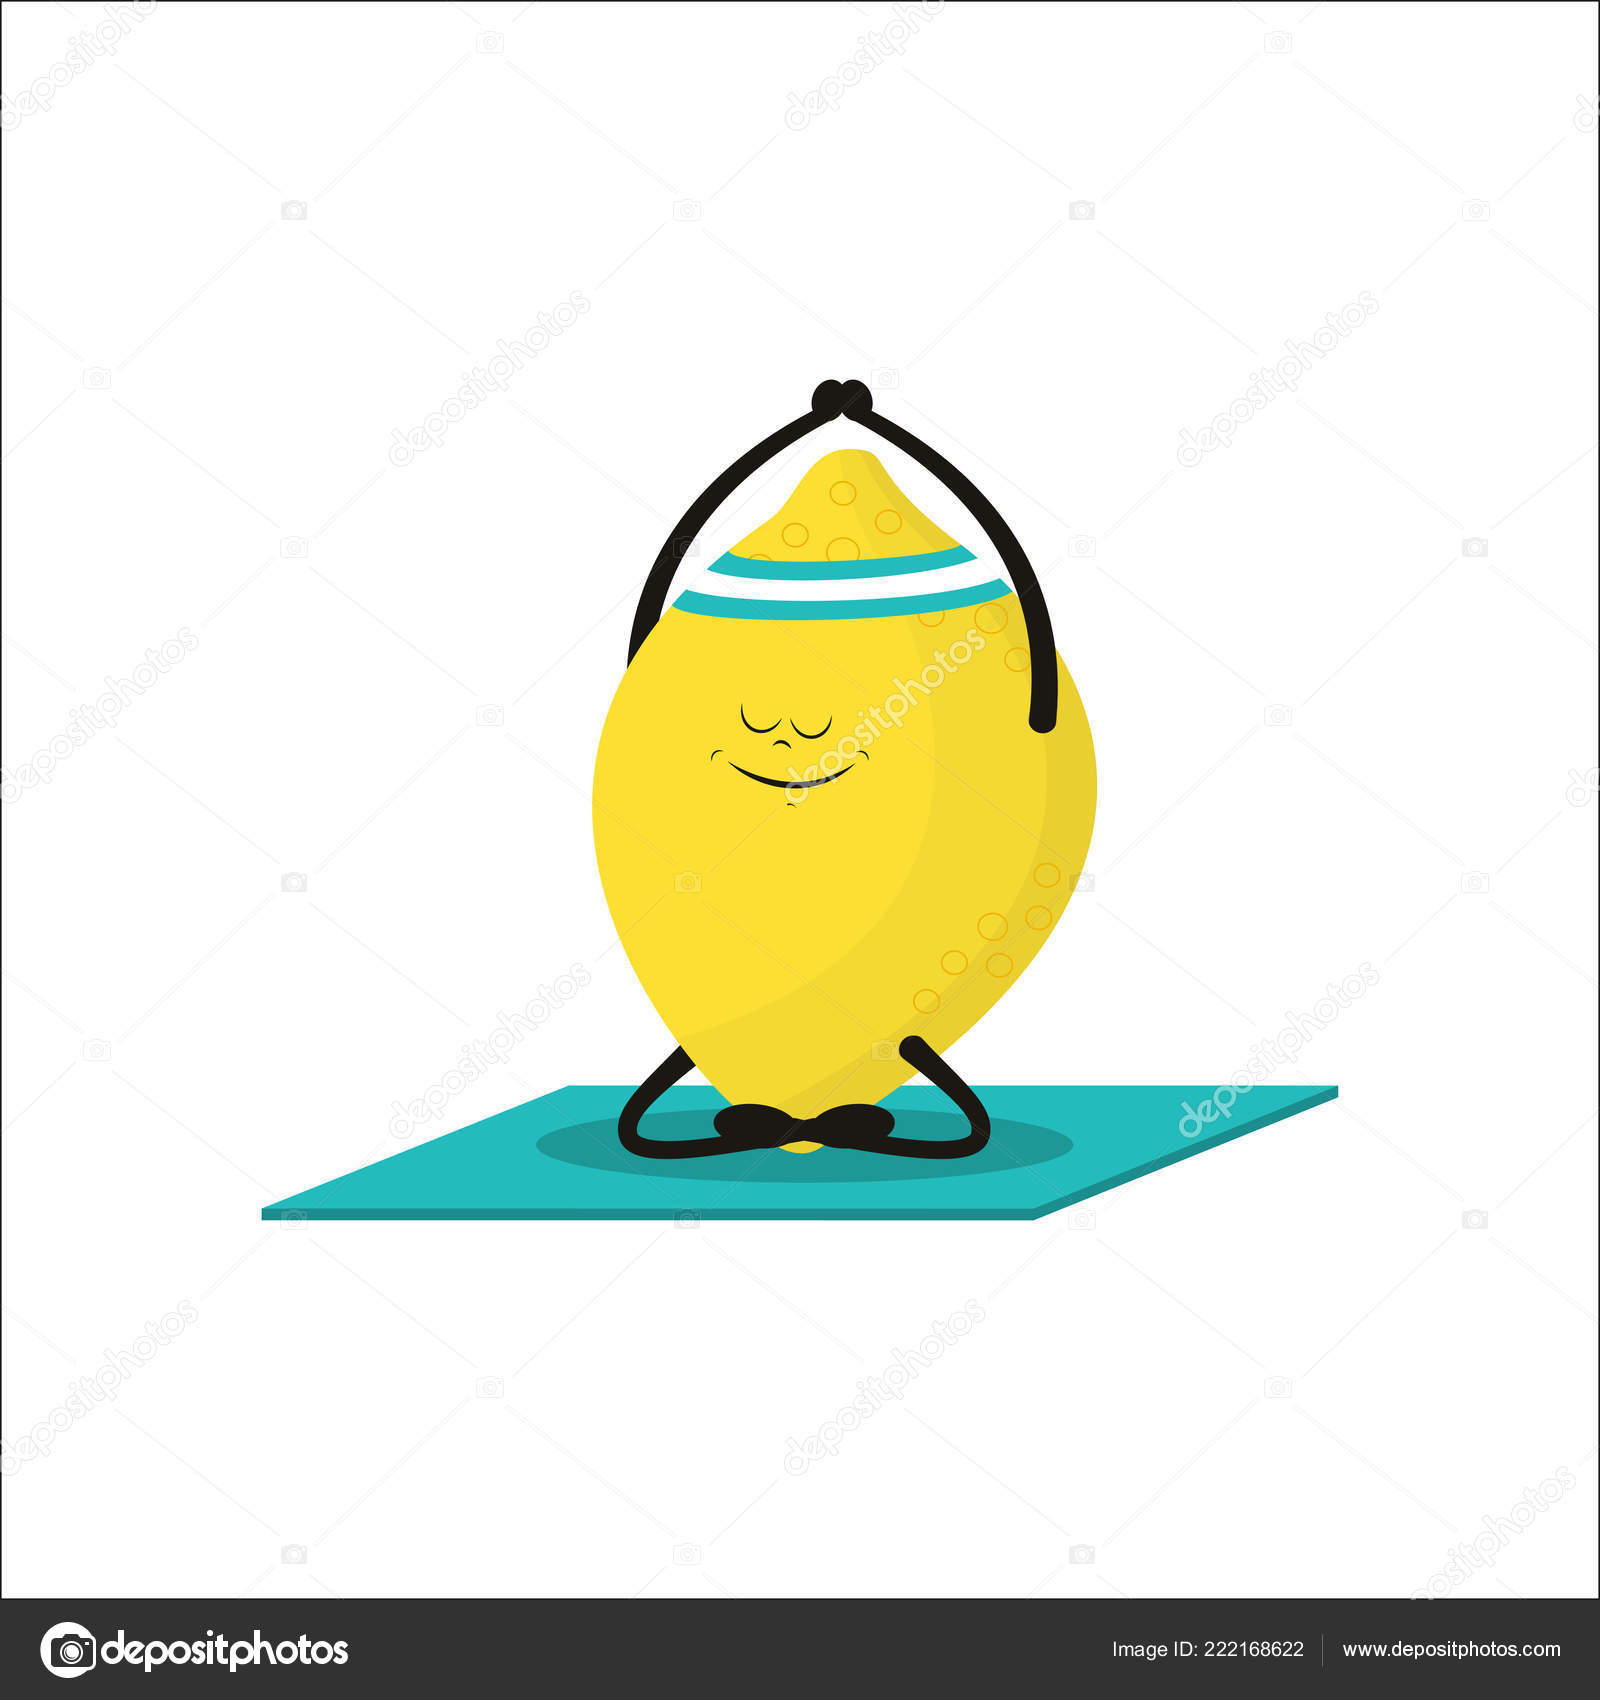 Images Funny Cartoon Exercise Cute Lemon Doing Yoga Exercise Funny Cartoon Fruit Character Isolated Stock Vector C Makc76 222168622